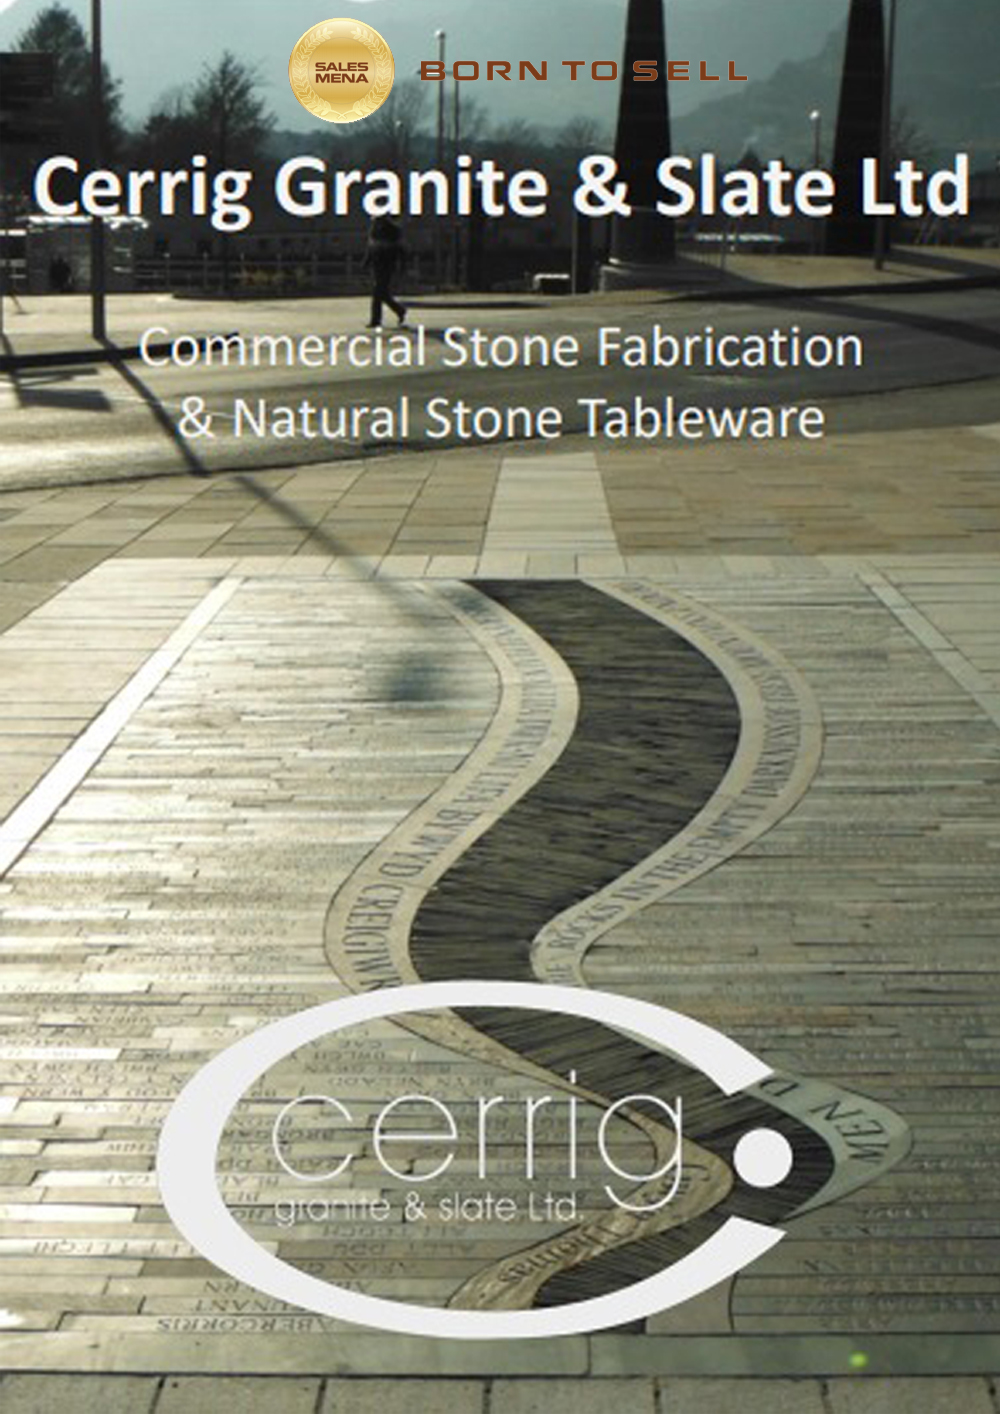 Cerrig Granite & Slate Ltd